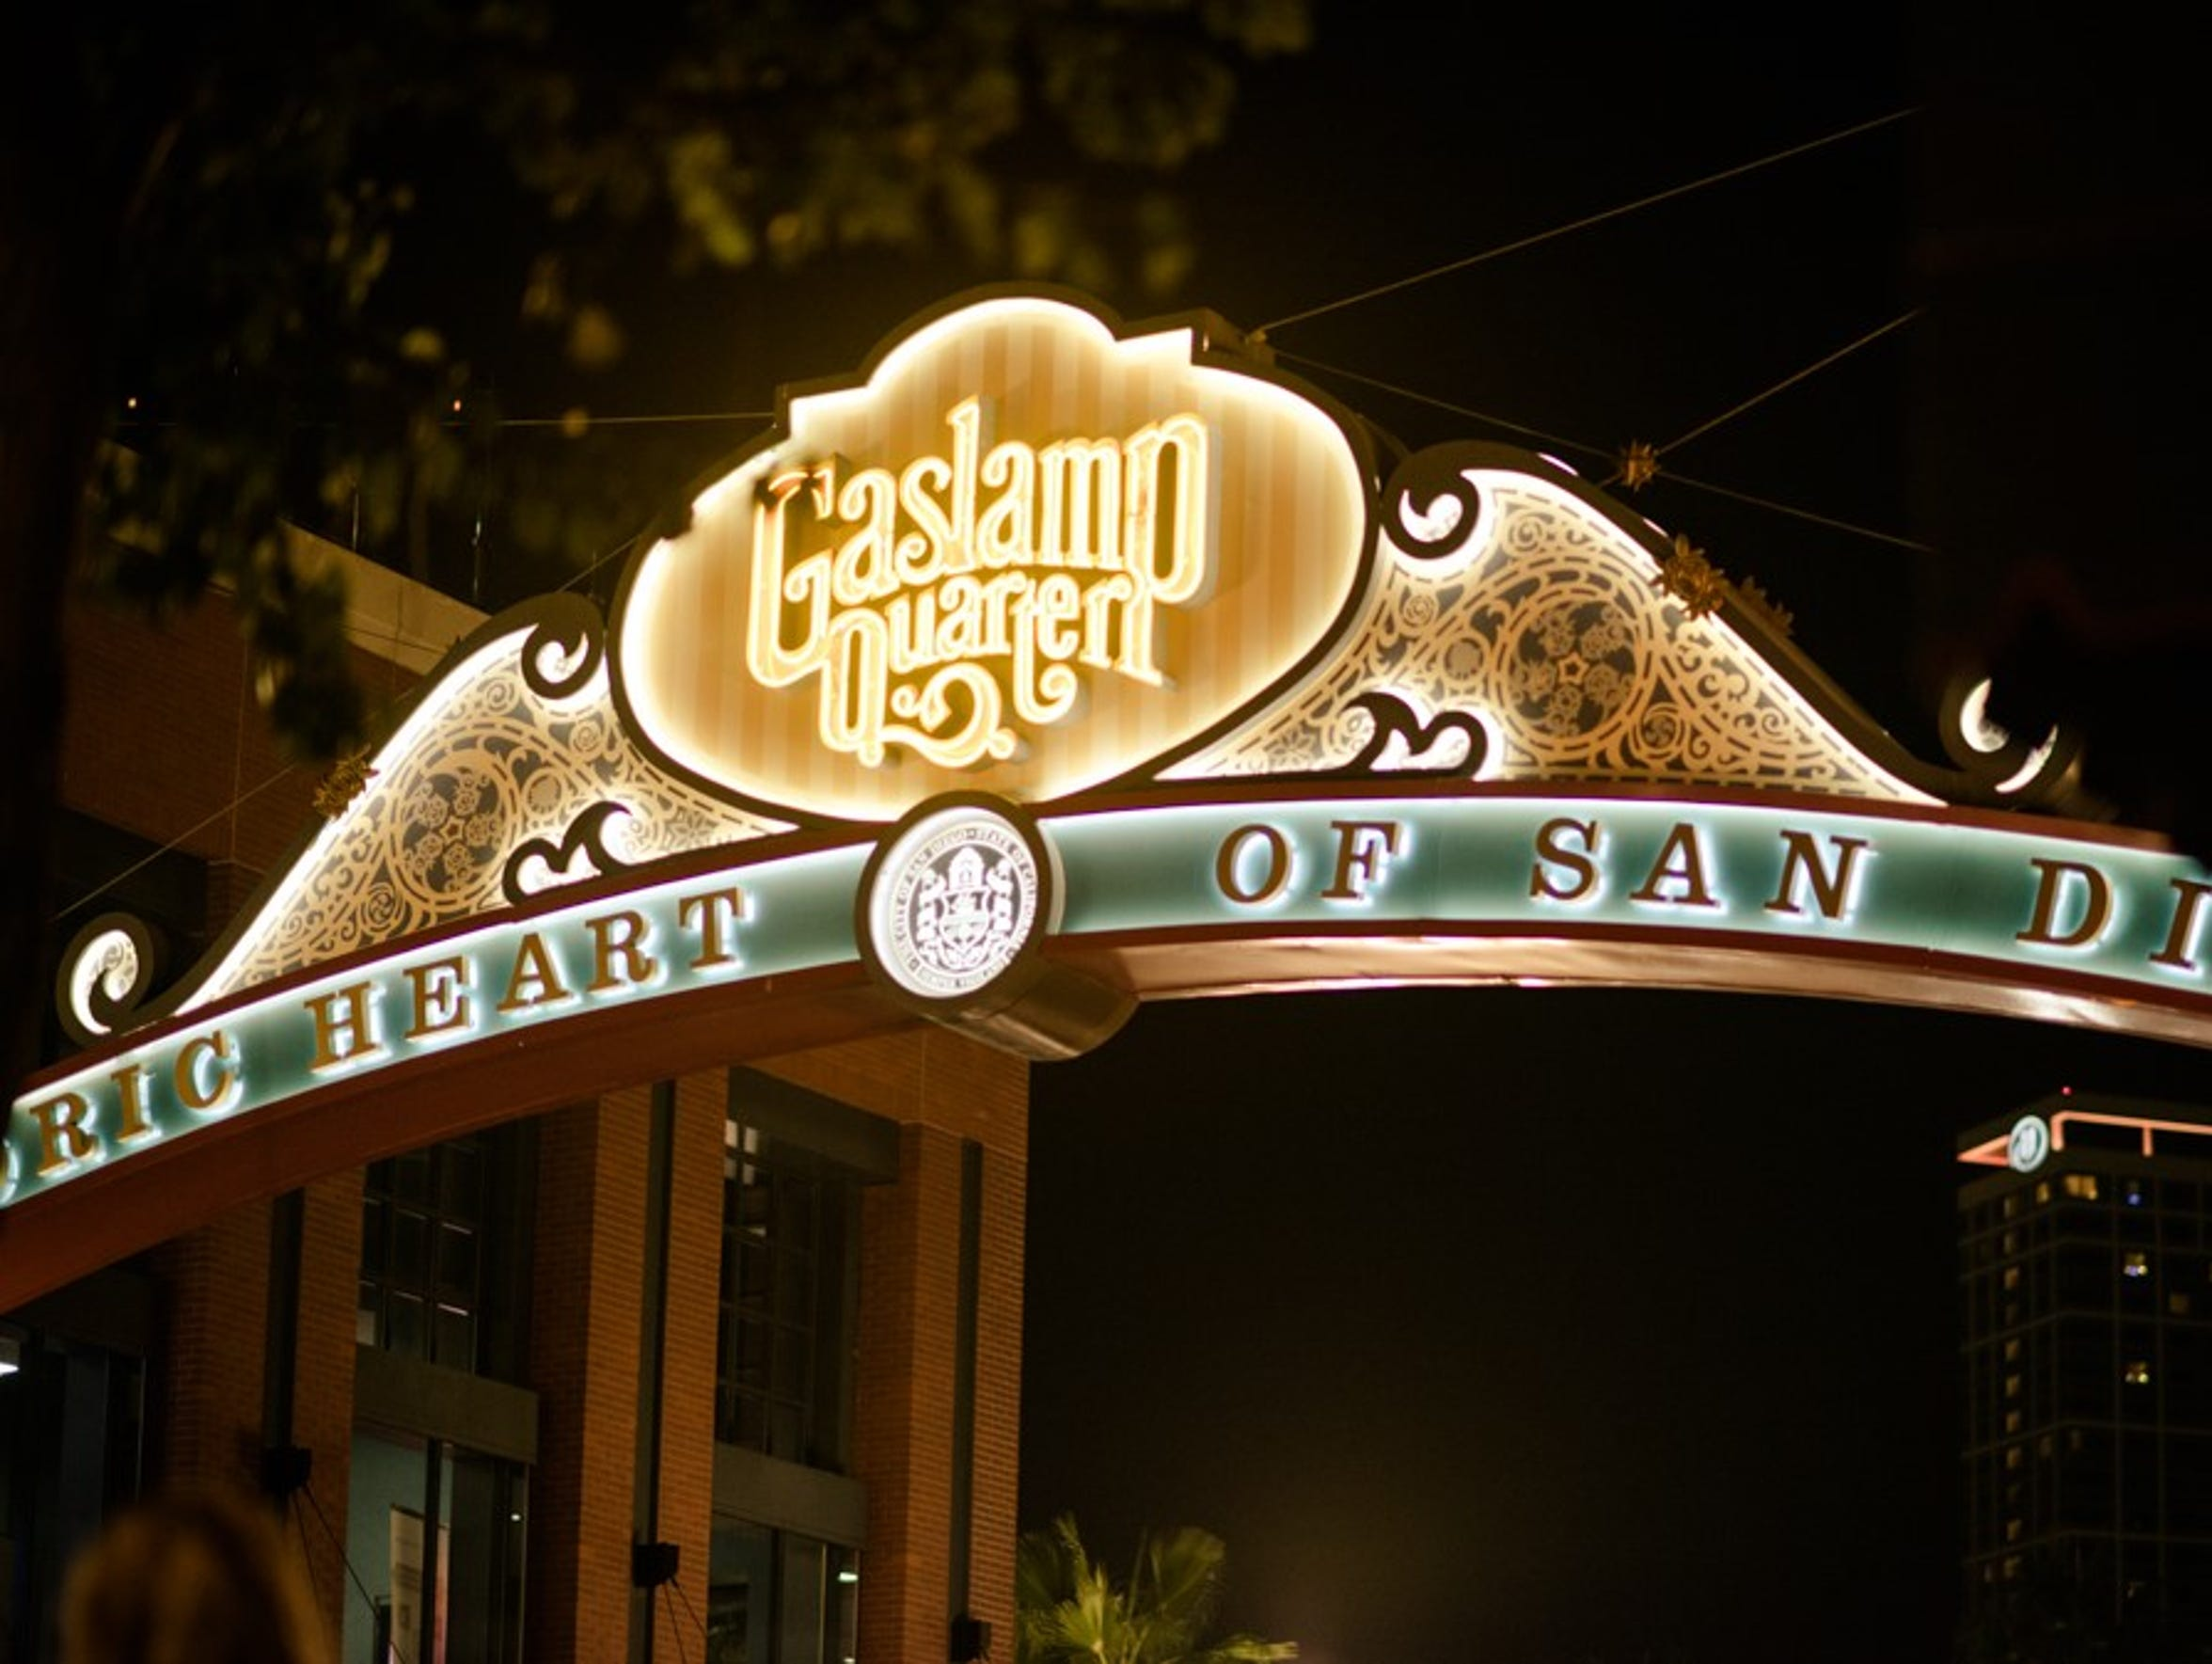 The Gaslamp Quarter is San Diego's party central with